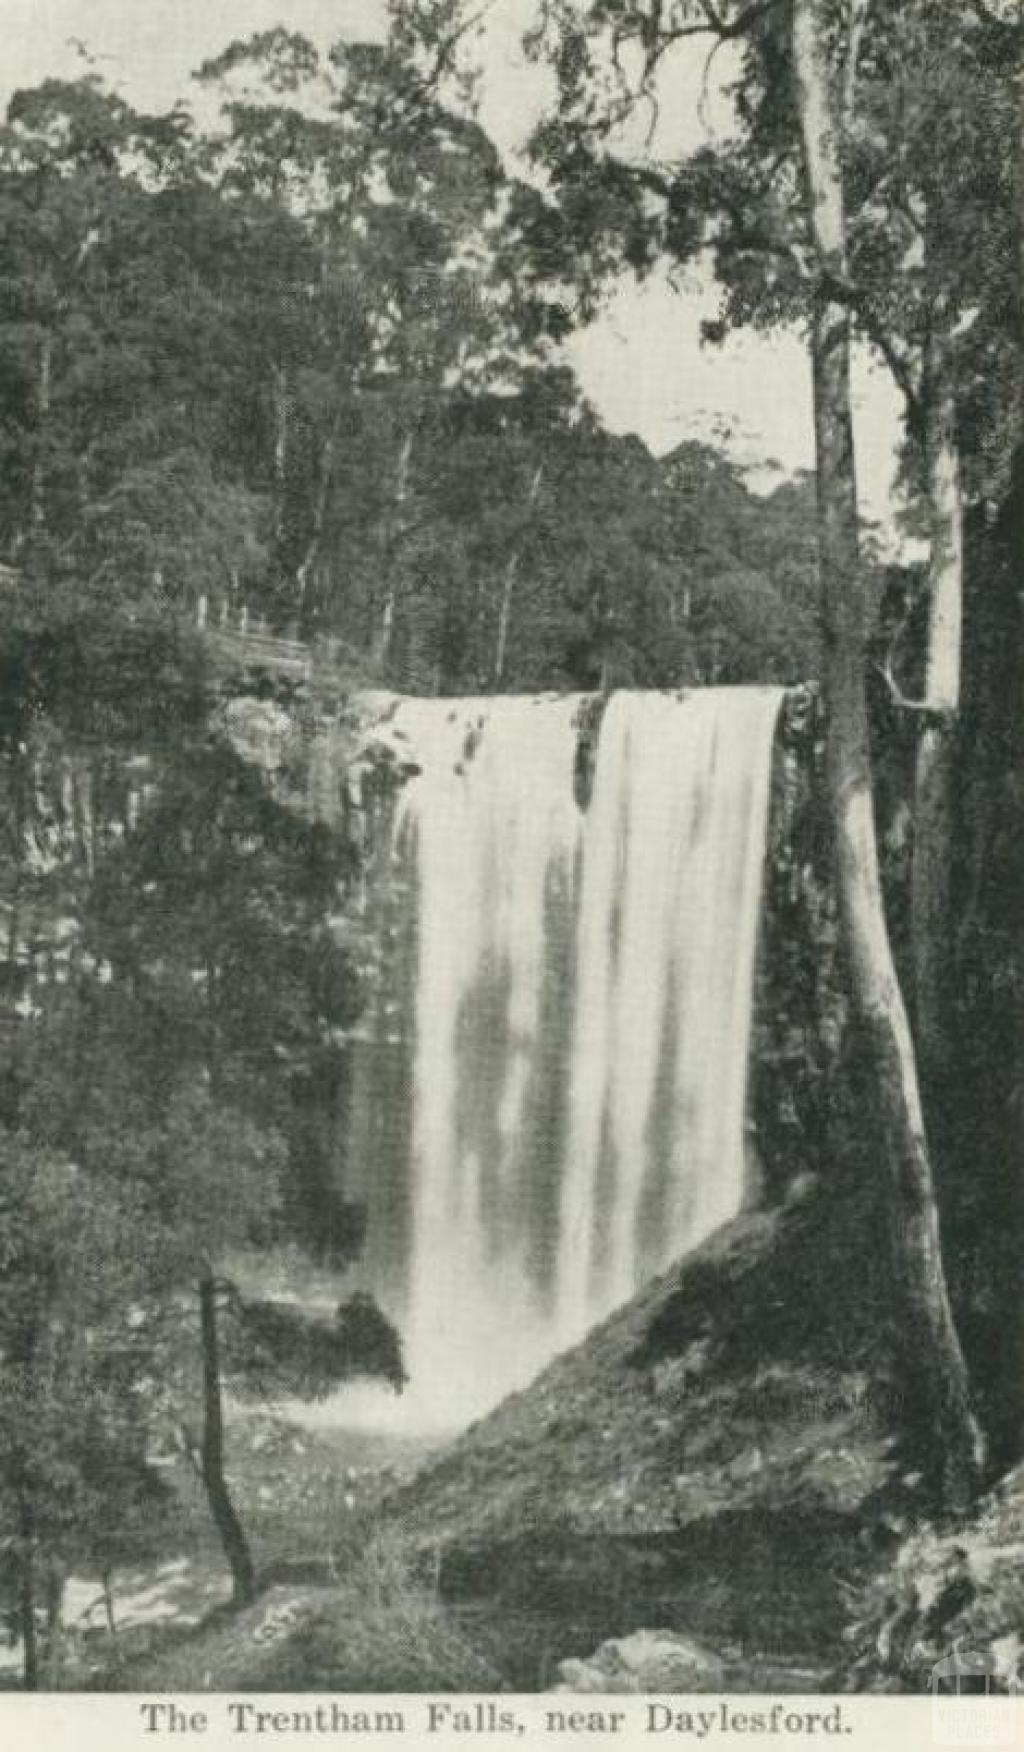 The Trentham Falls, near Daylesford